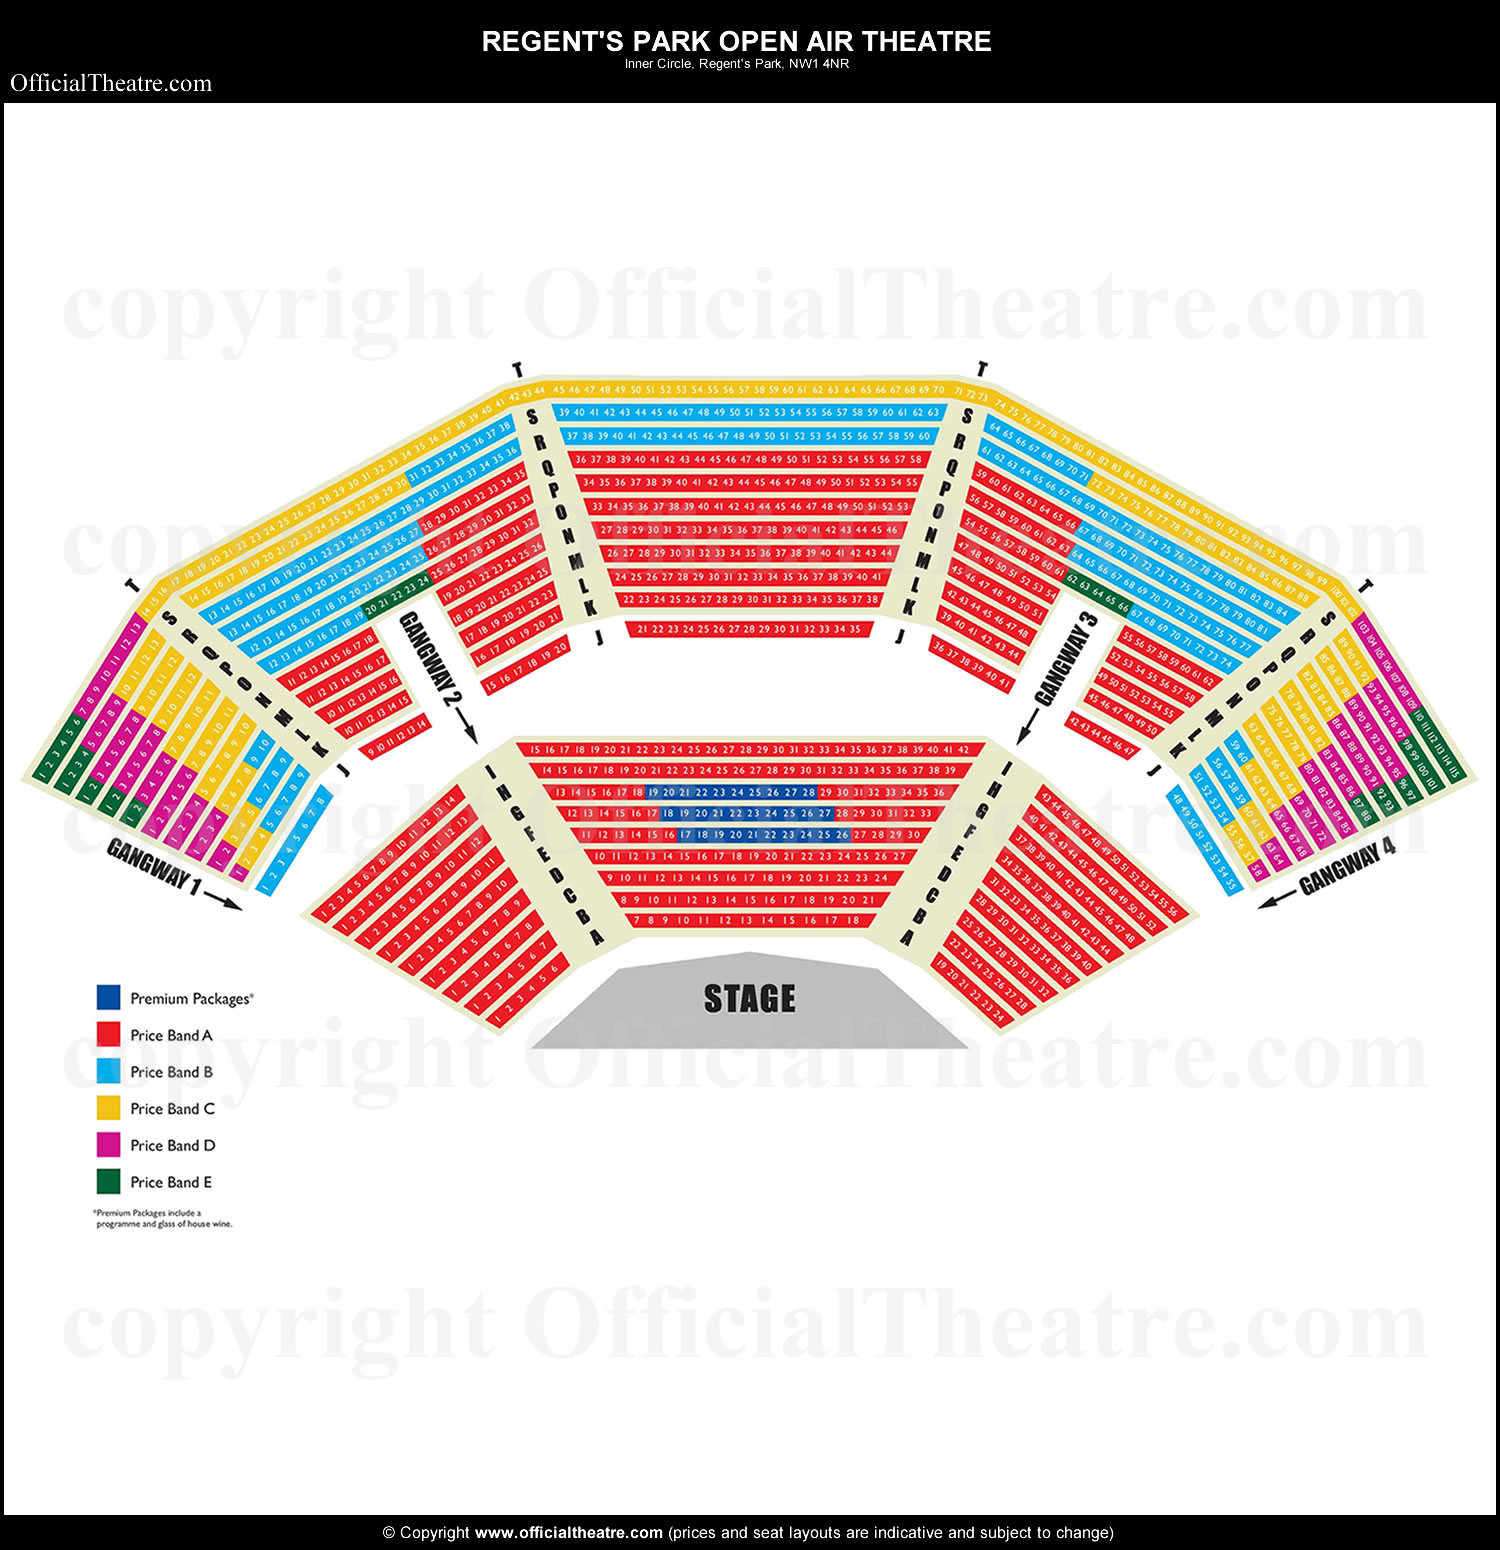 Regents Park Open Air Theatre London seat map and prices for On.